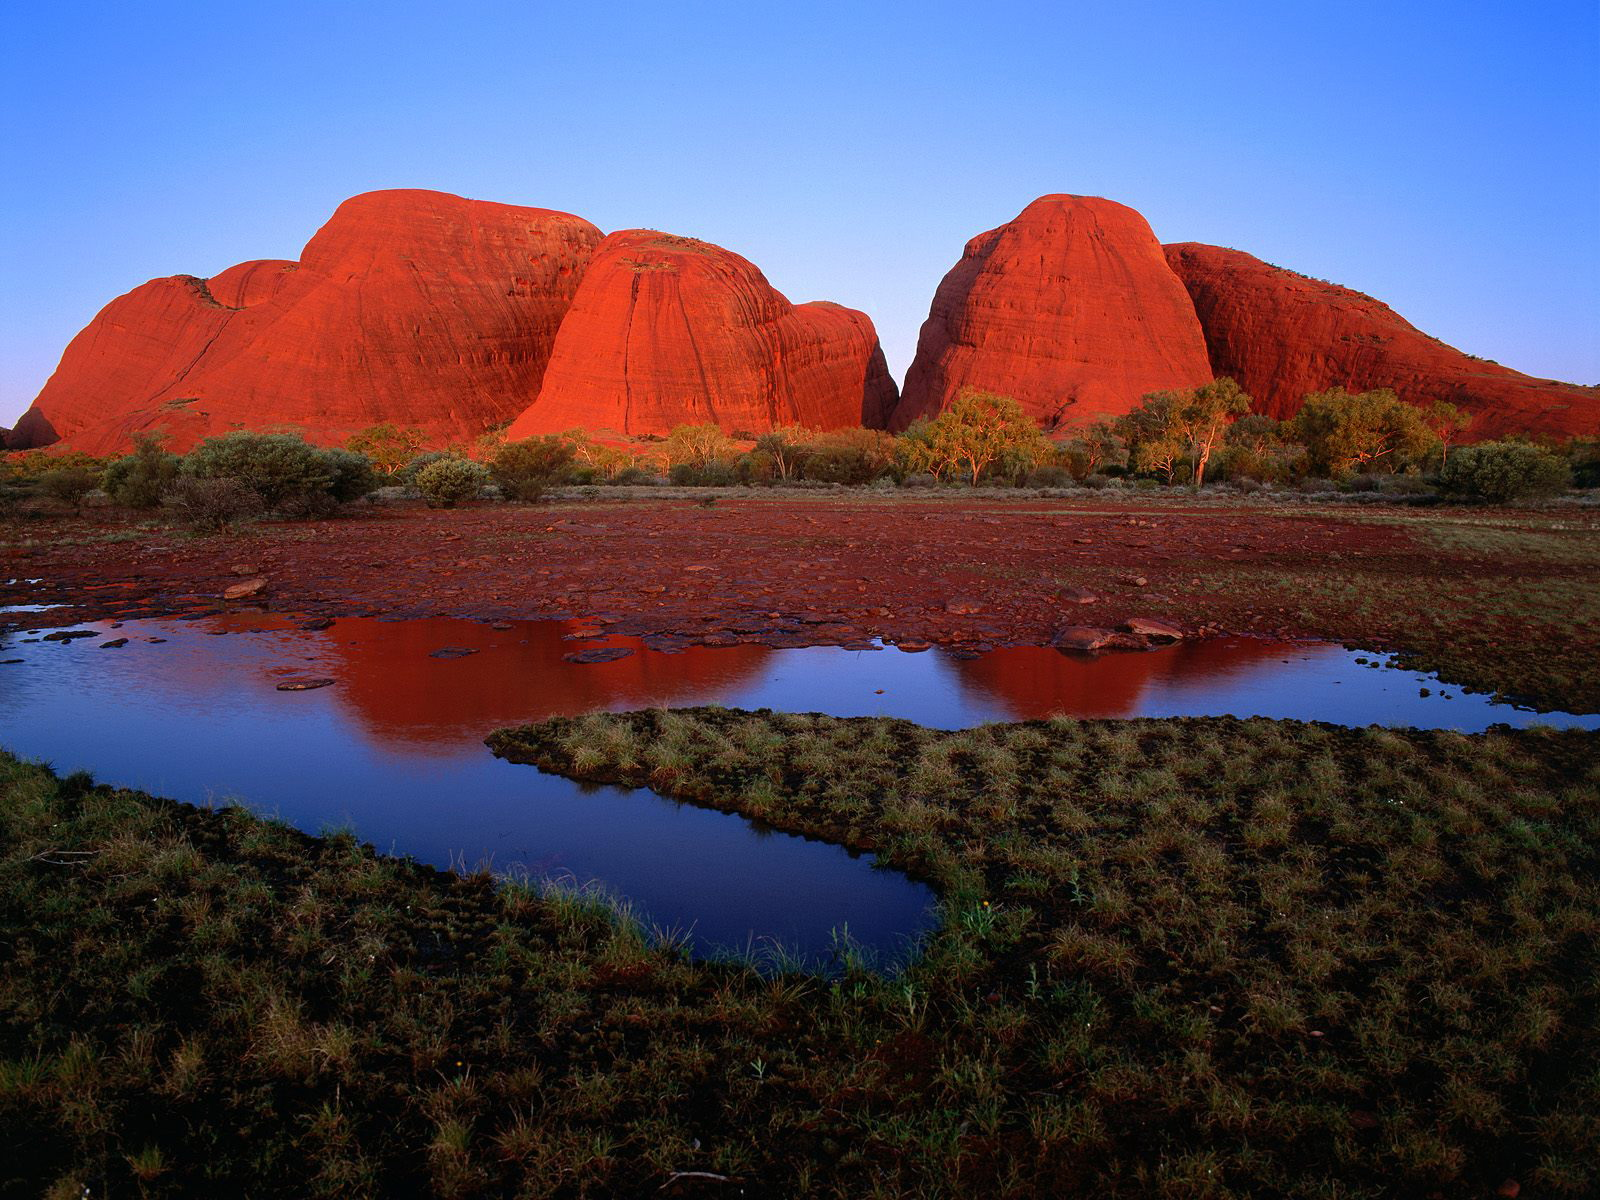 Uluru ayers rock australia travel guide information travel and tourism - Australian tourism office ...